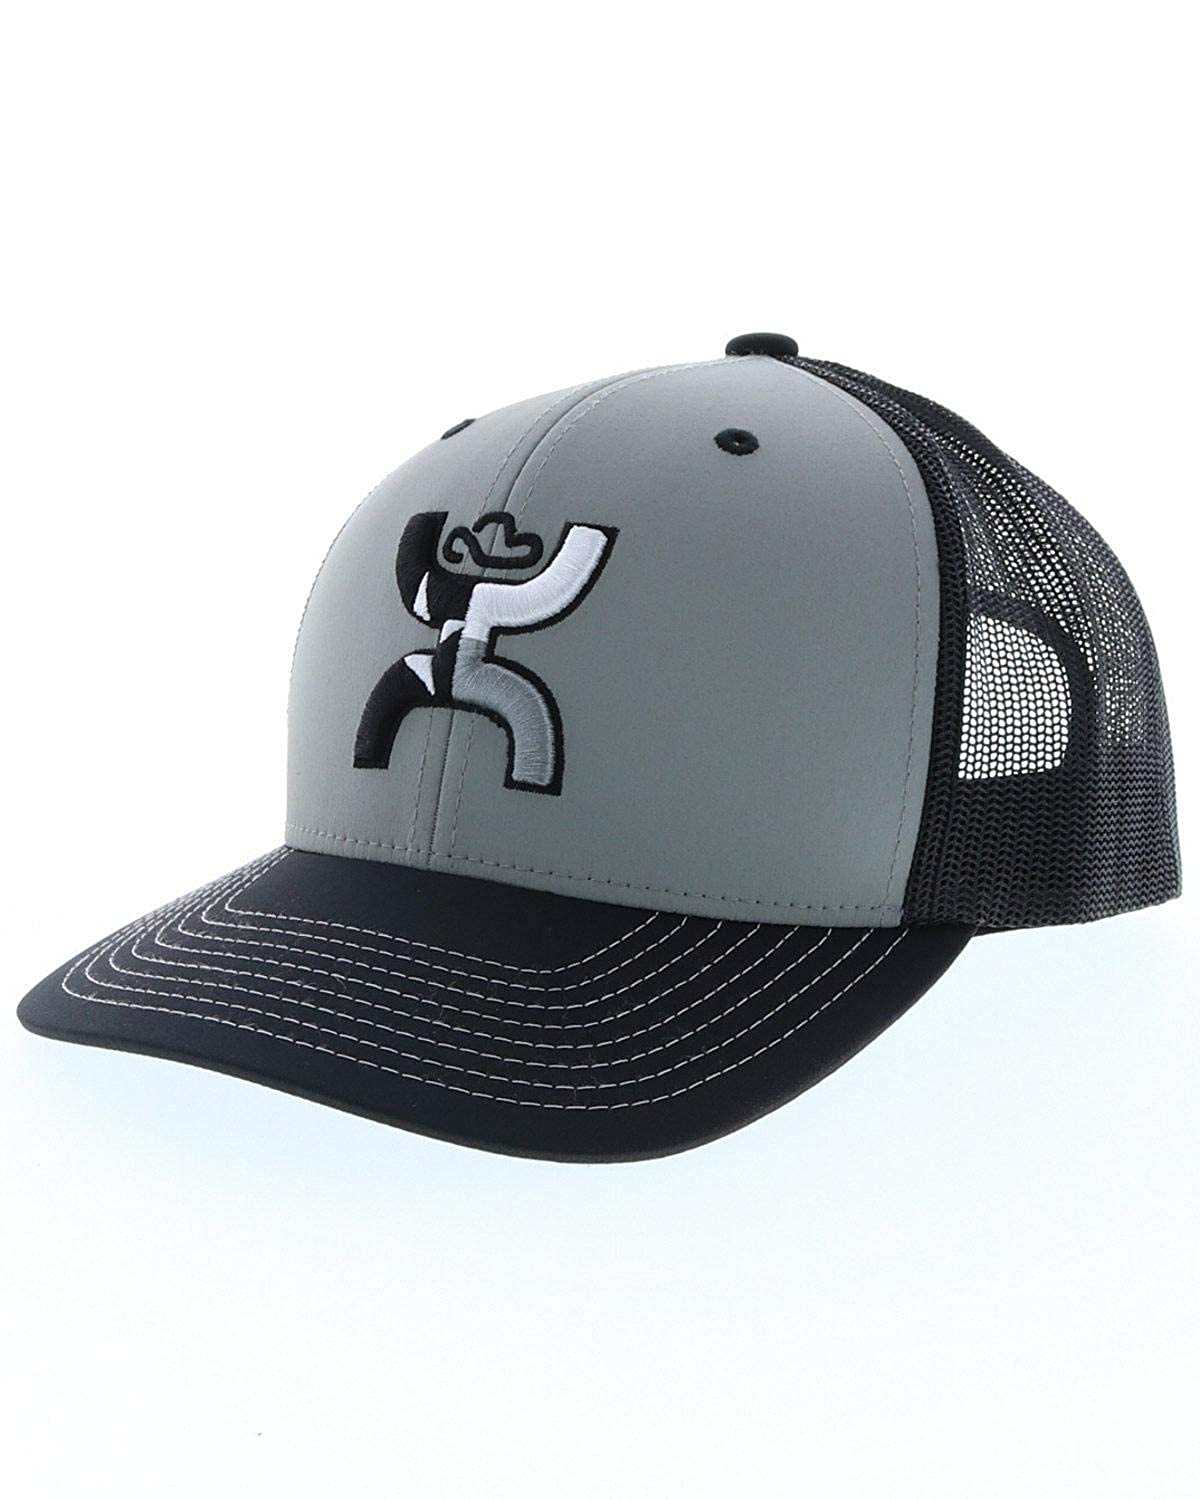 hot sale online 6926e fea2c HOOey Texican Adjustable Snapback Hat (Gray Black) at Amazon Men s Clothing  store